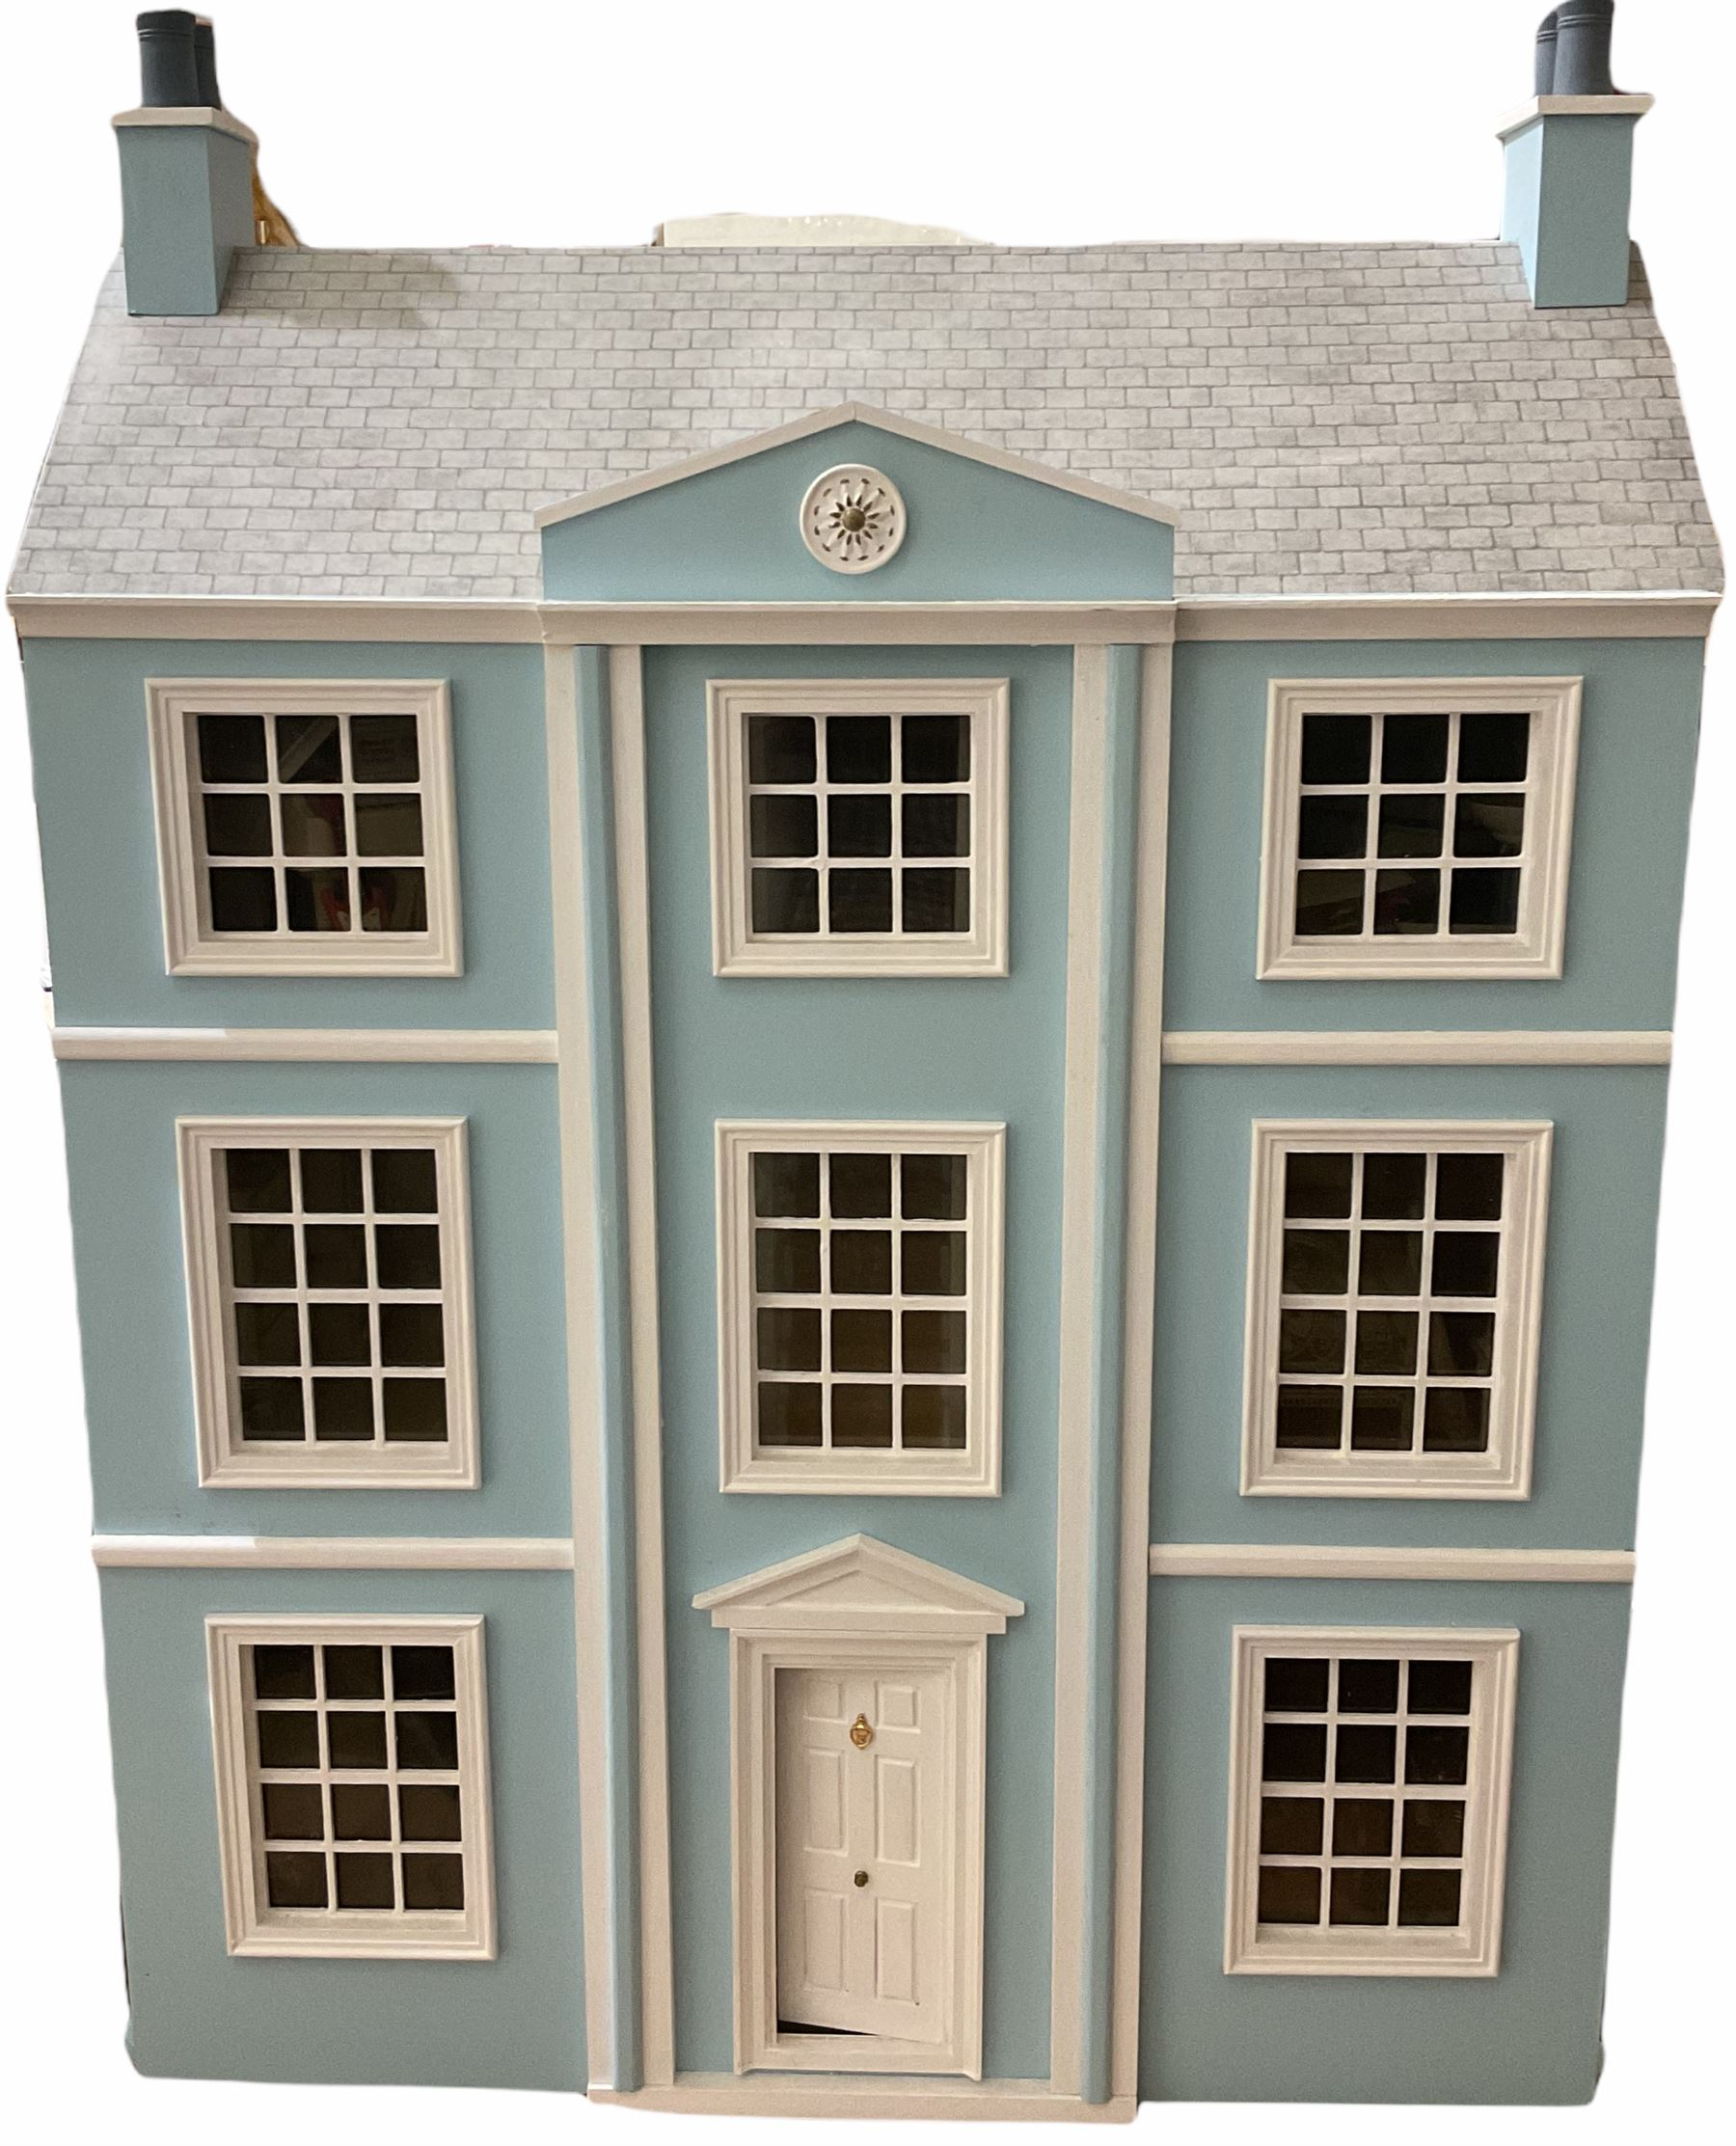 Georgian style wooden double fronted three-storey dolls house with pale blue stucco finish under a f